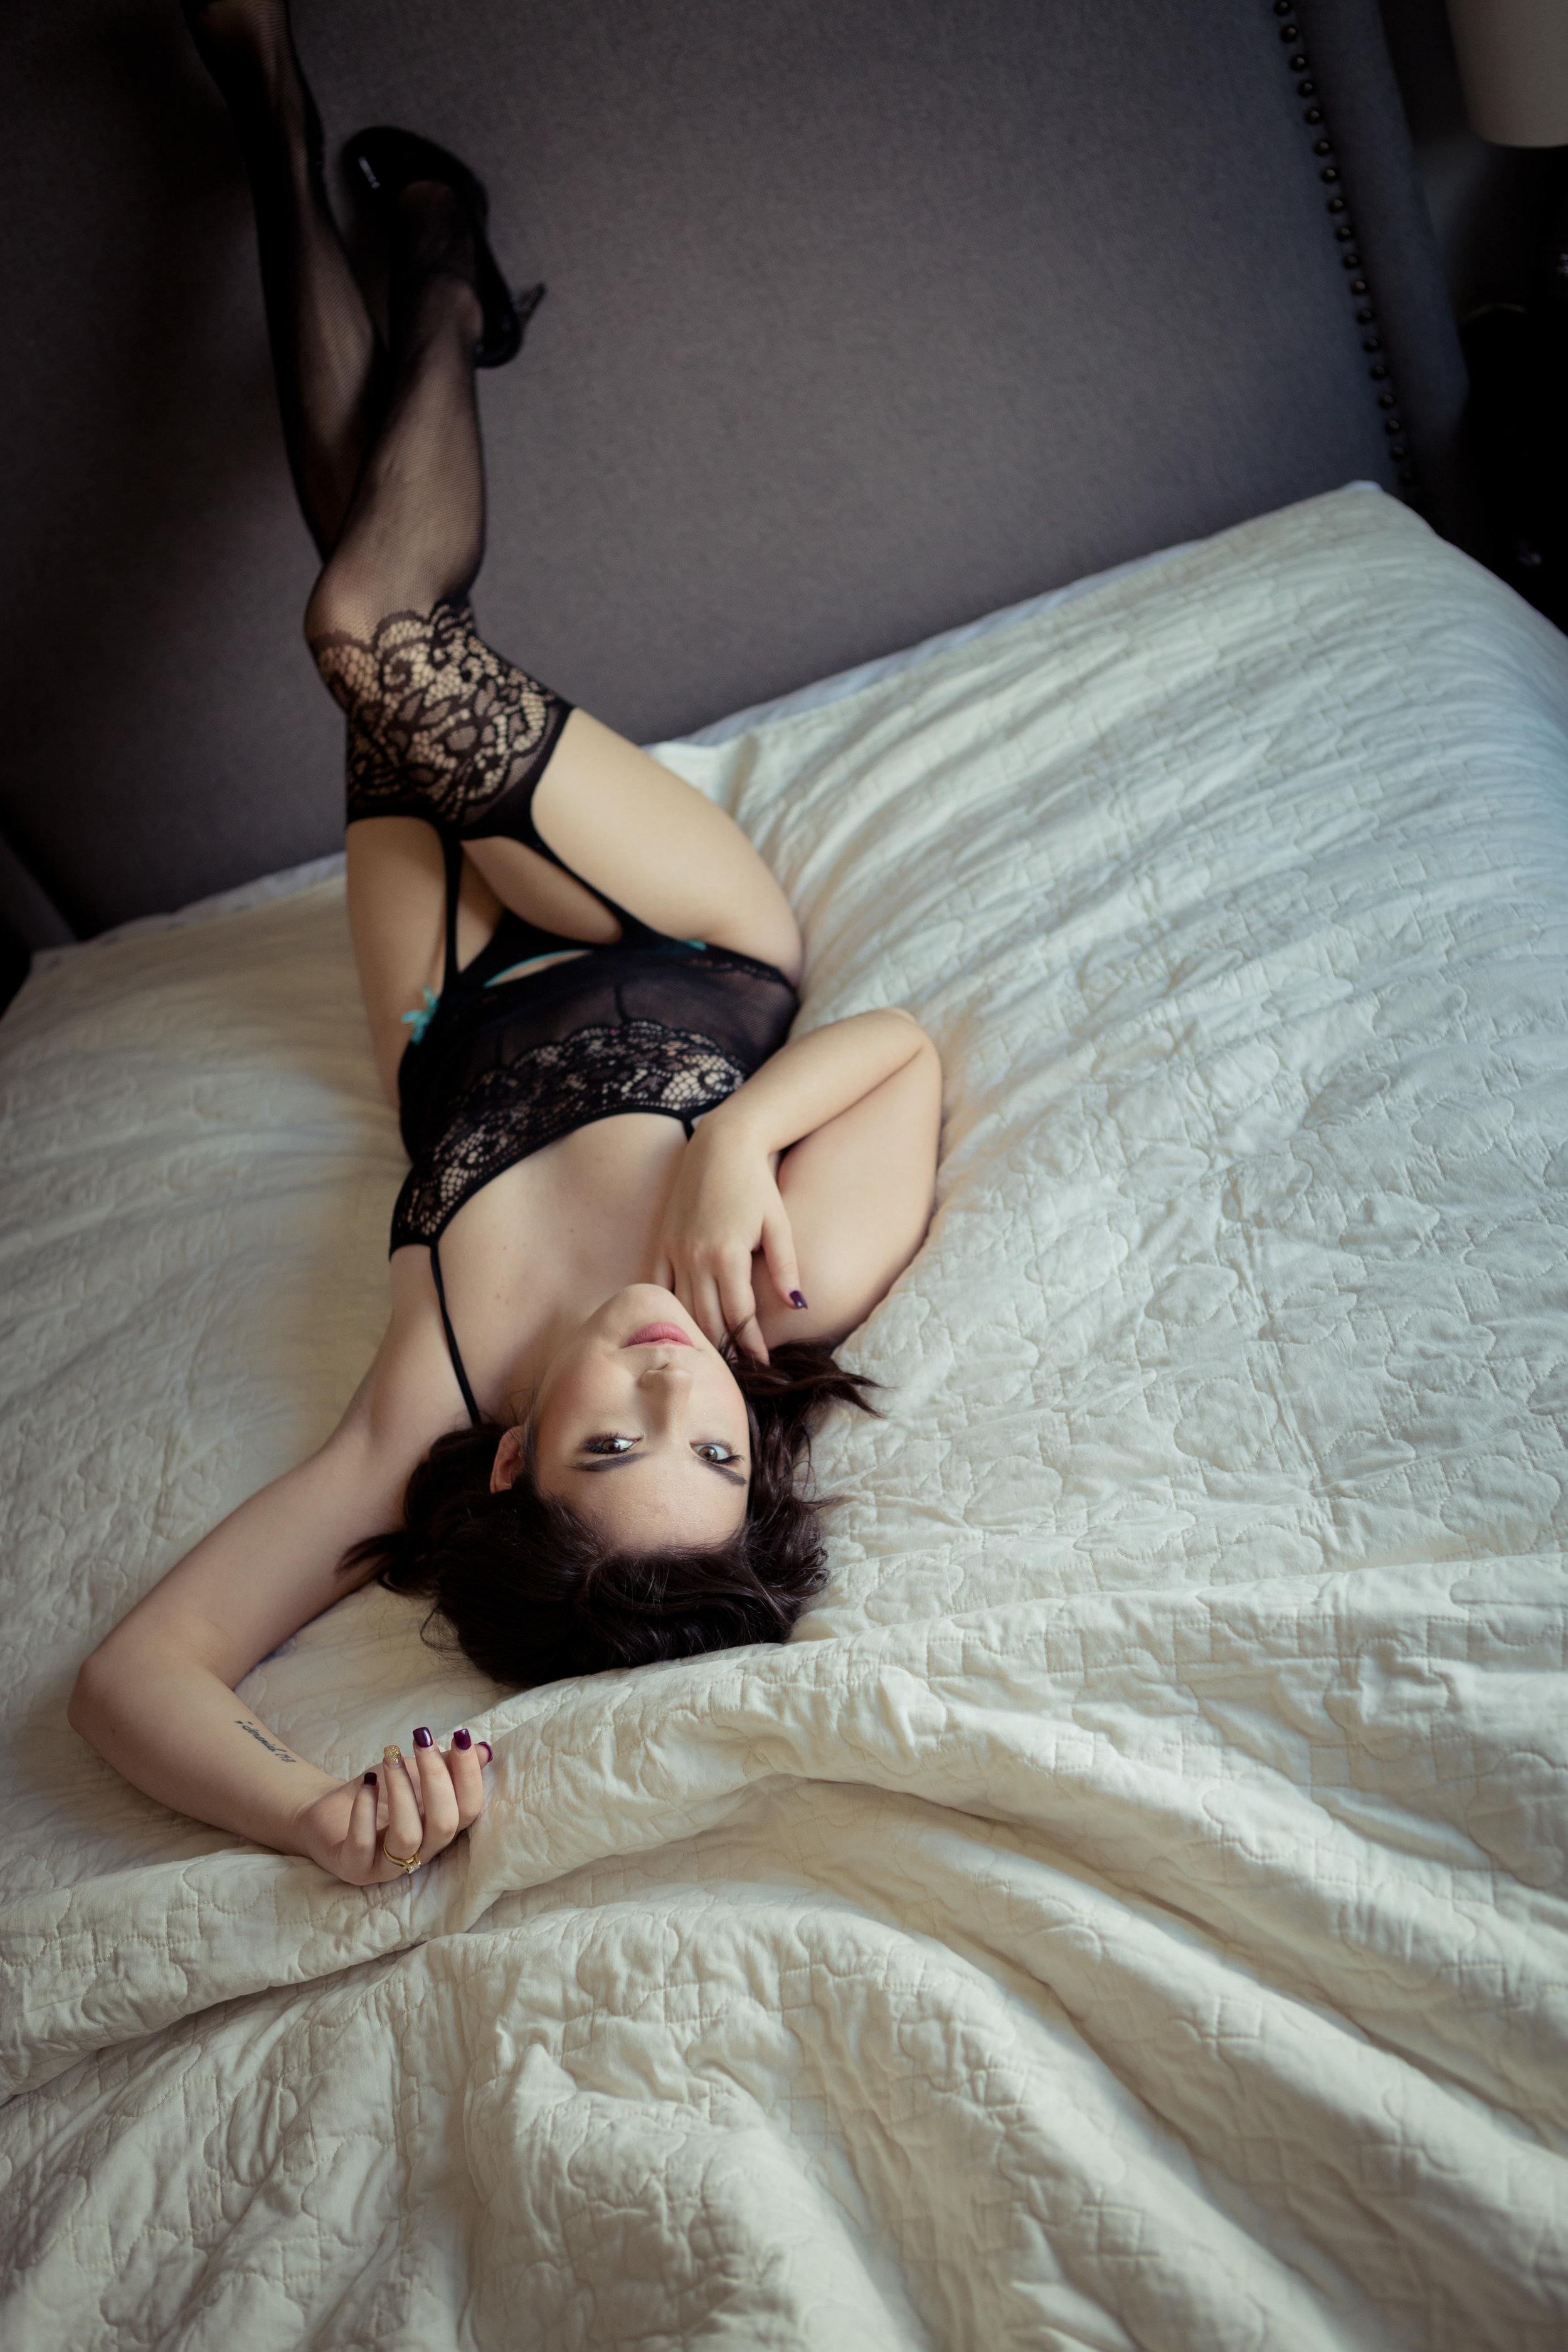 Woman in black lingerie on bed. Boudoir session in Helena, Montana by boudoir photographer Misty Boles